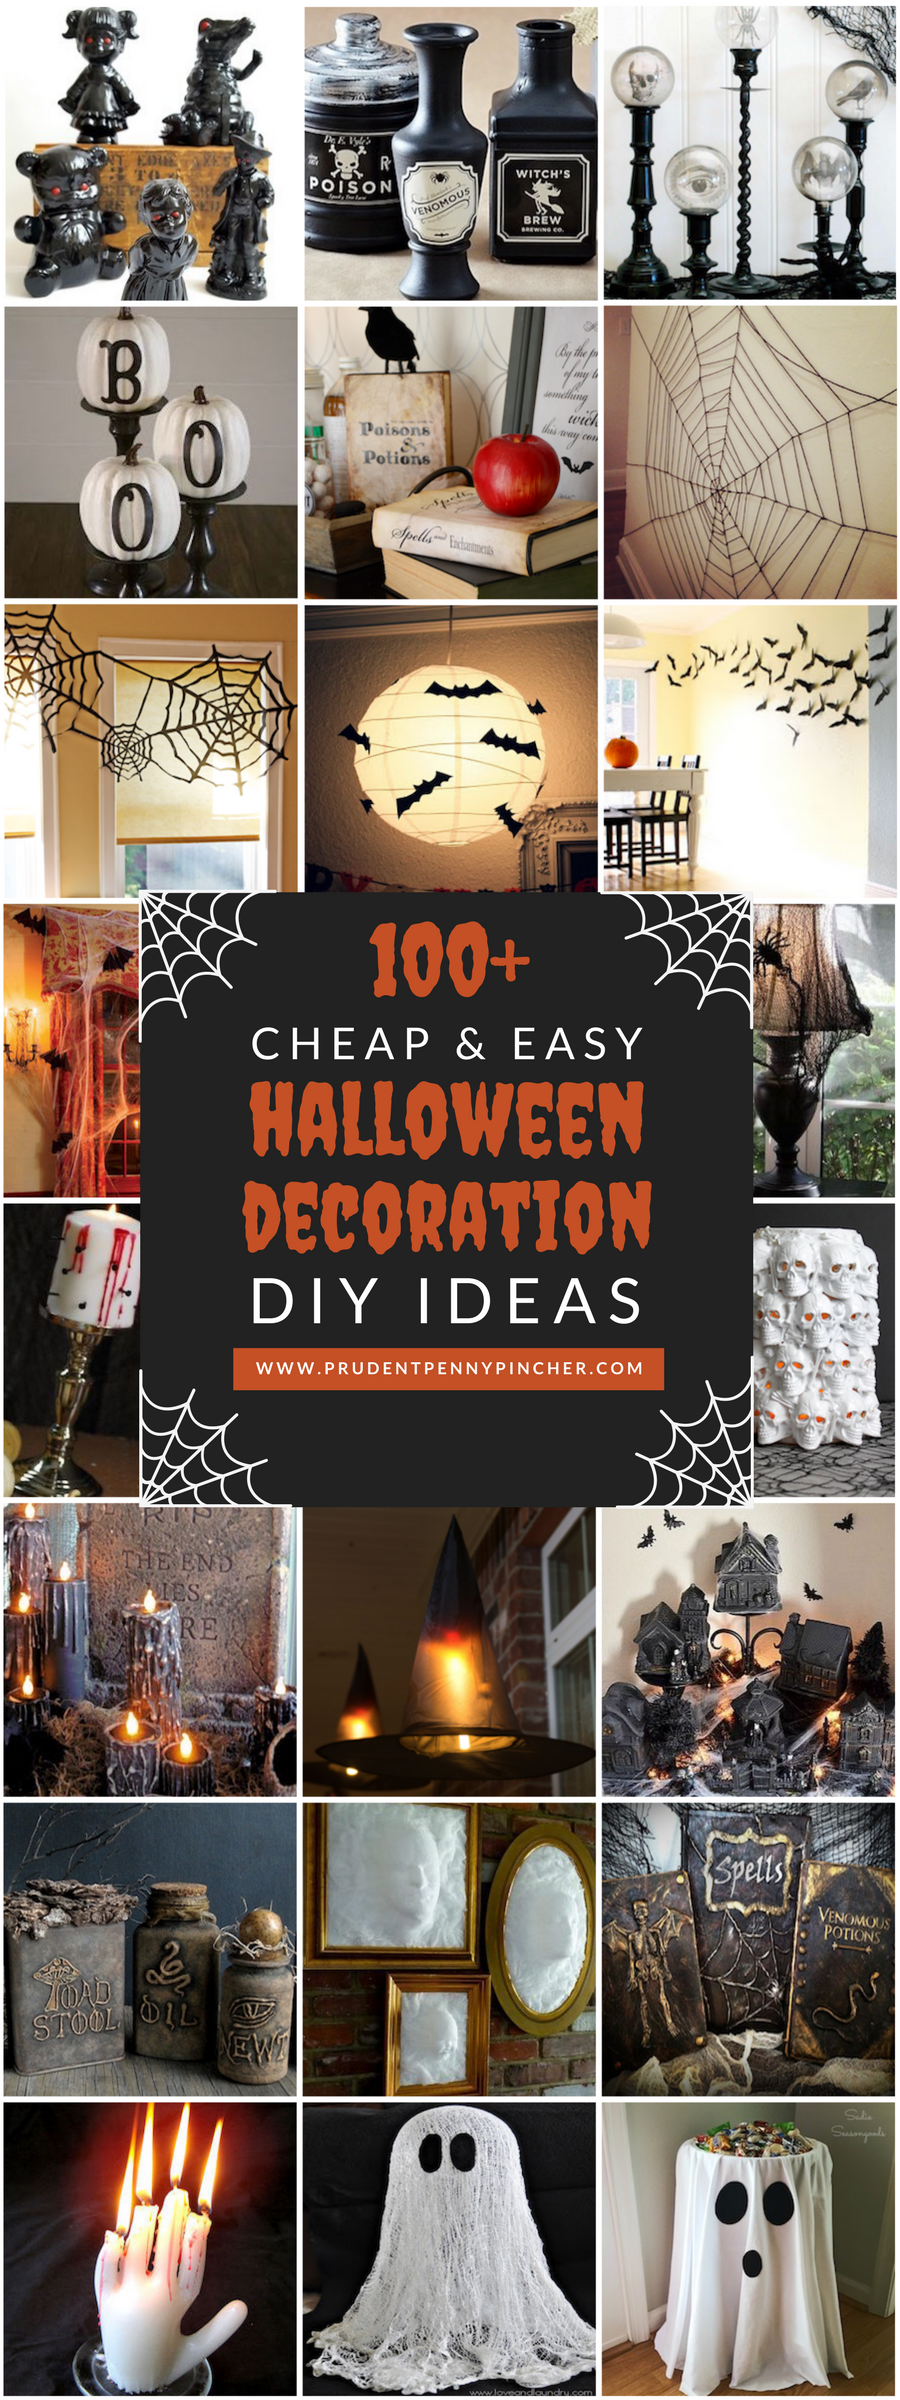 100 cheap and easy halloween decor diy ideas prudent penny pincher. Black Bedroom Furniture Sets. Home Design Ideas